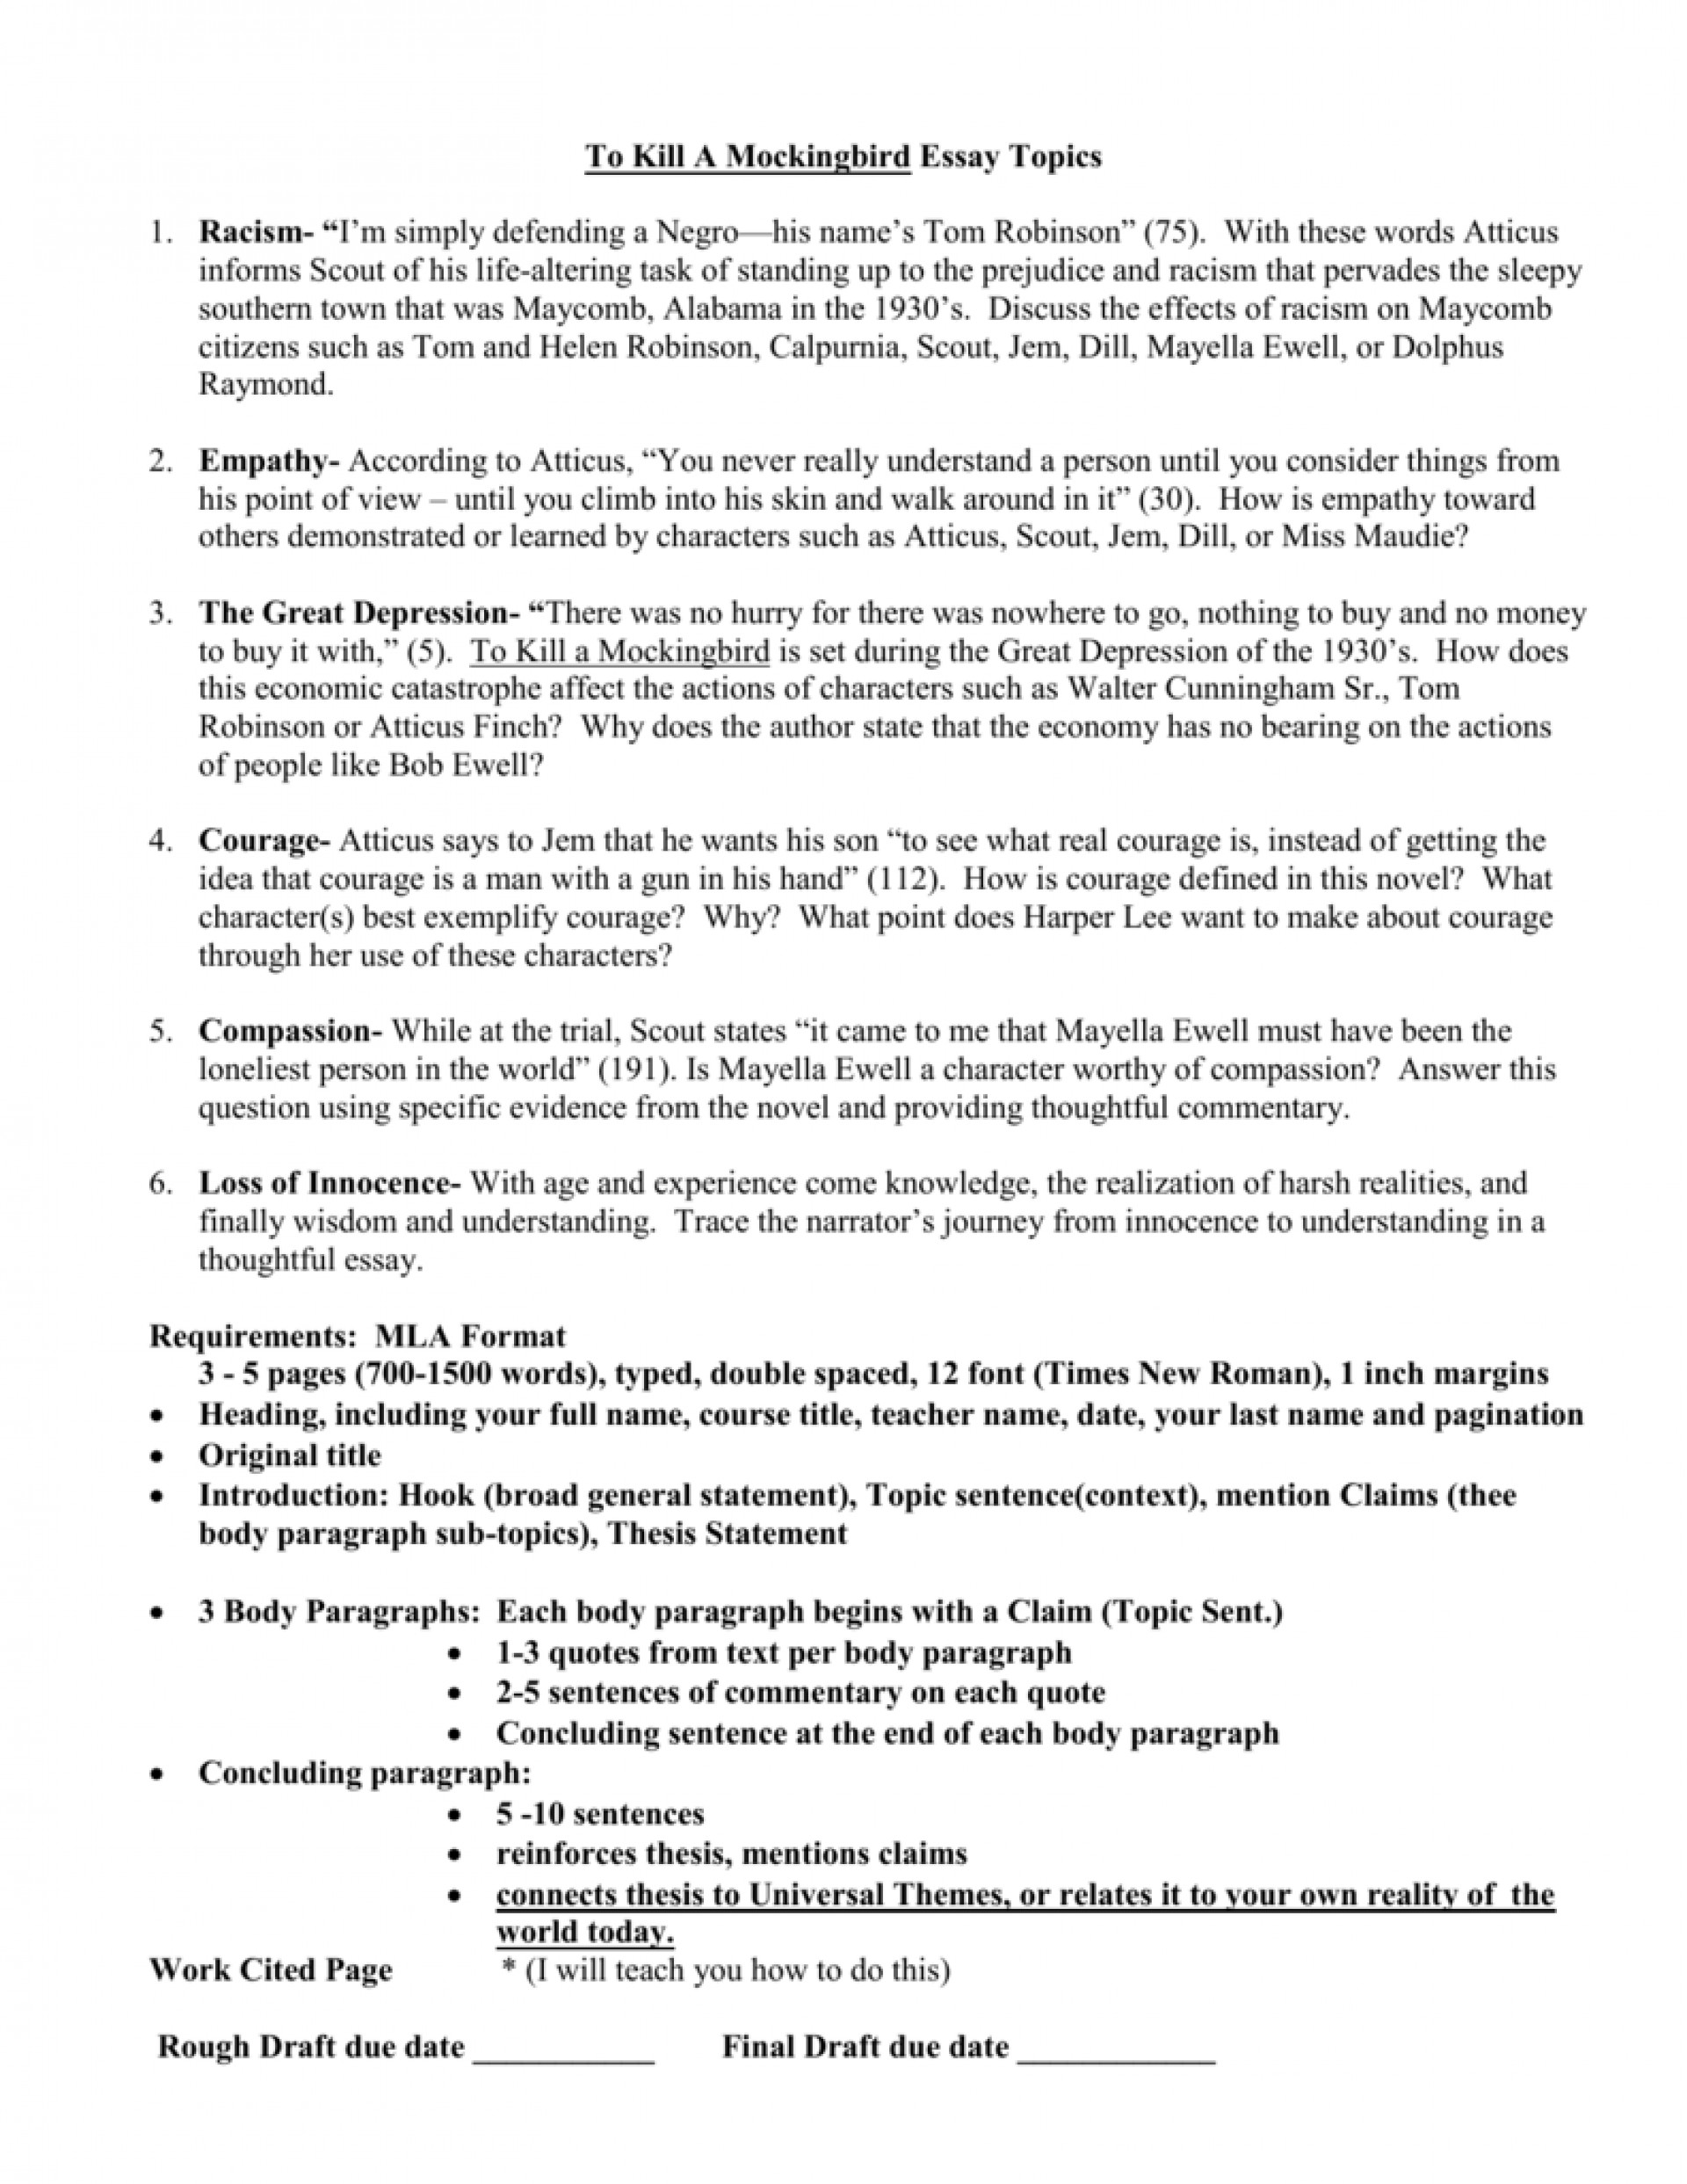 001 009245800 1 Essay Example To Kill Mockingbird Stunning A Topics Writing Prompts By Chapter Research Paper Pdf 1920